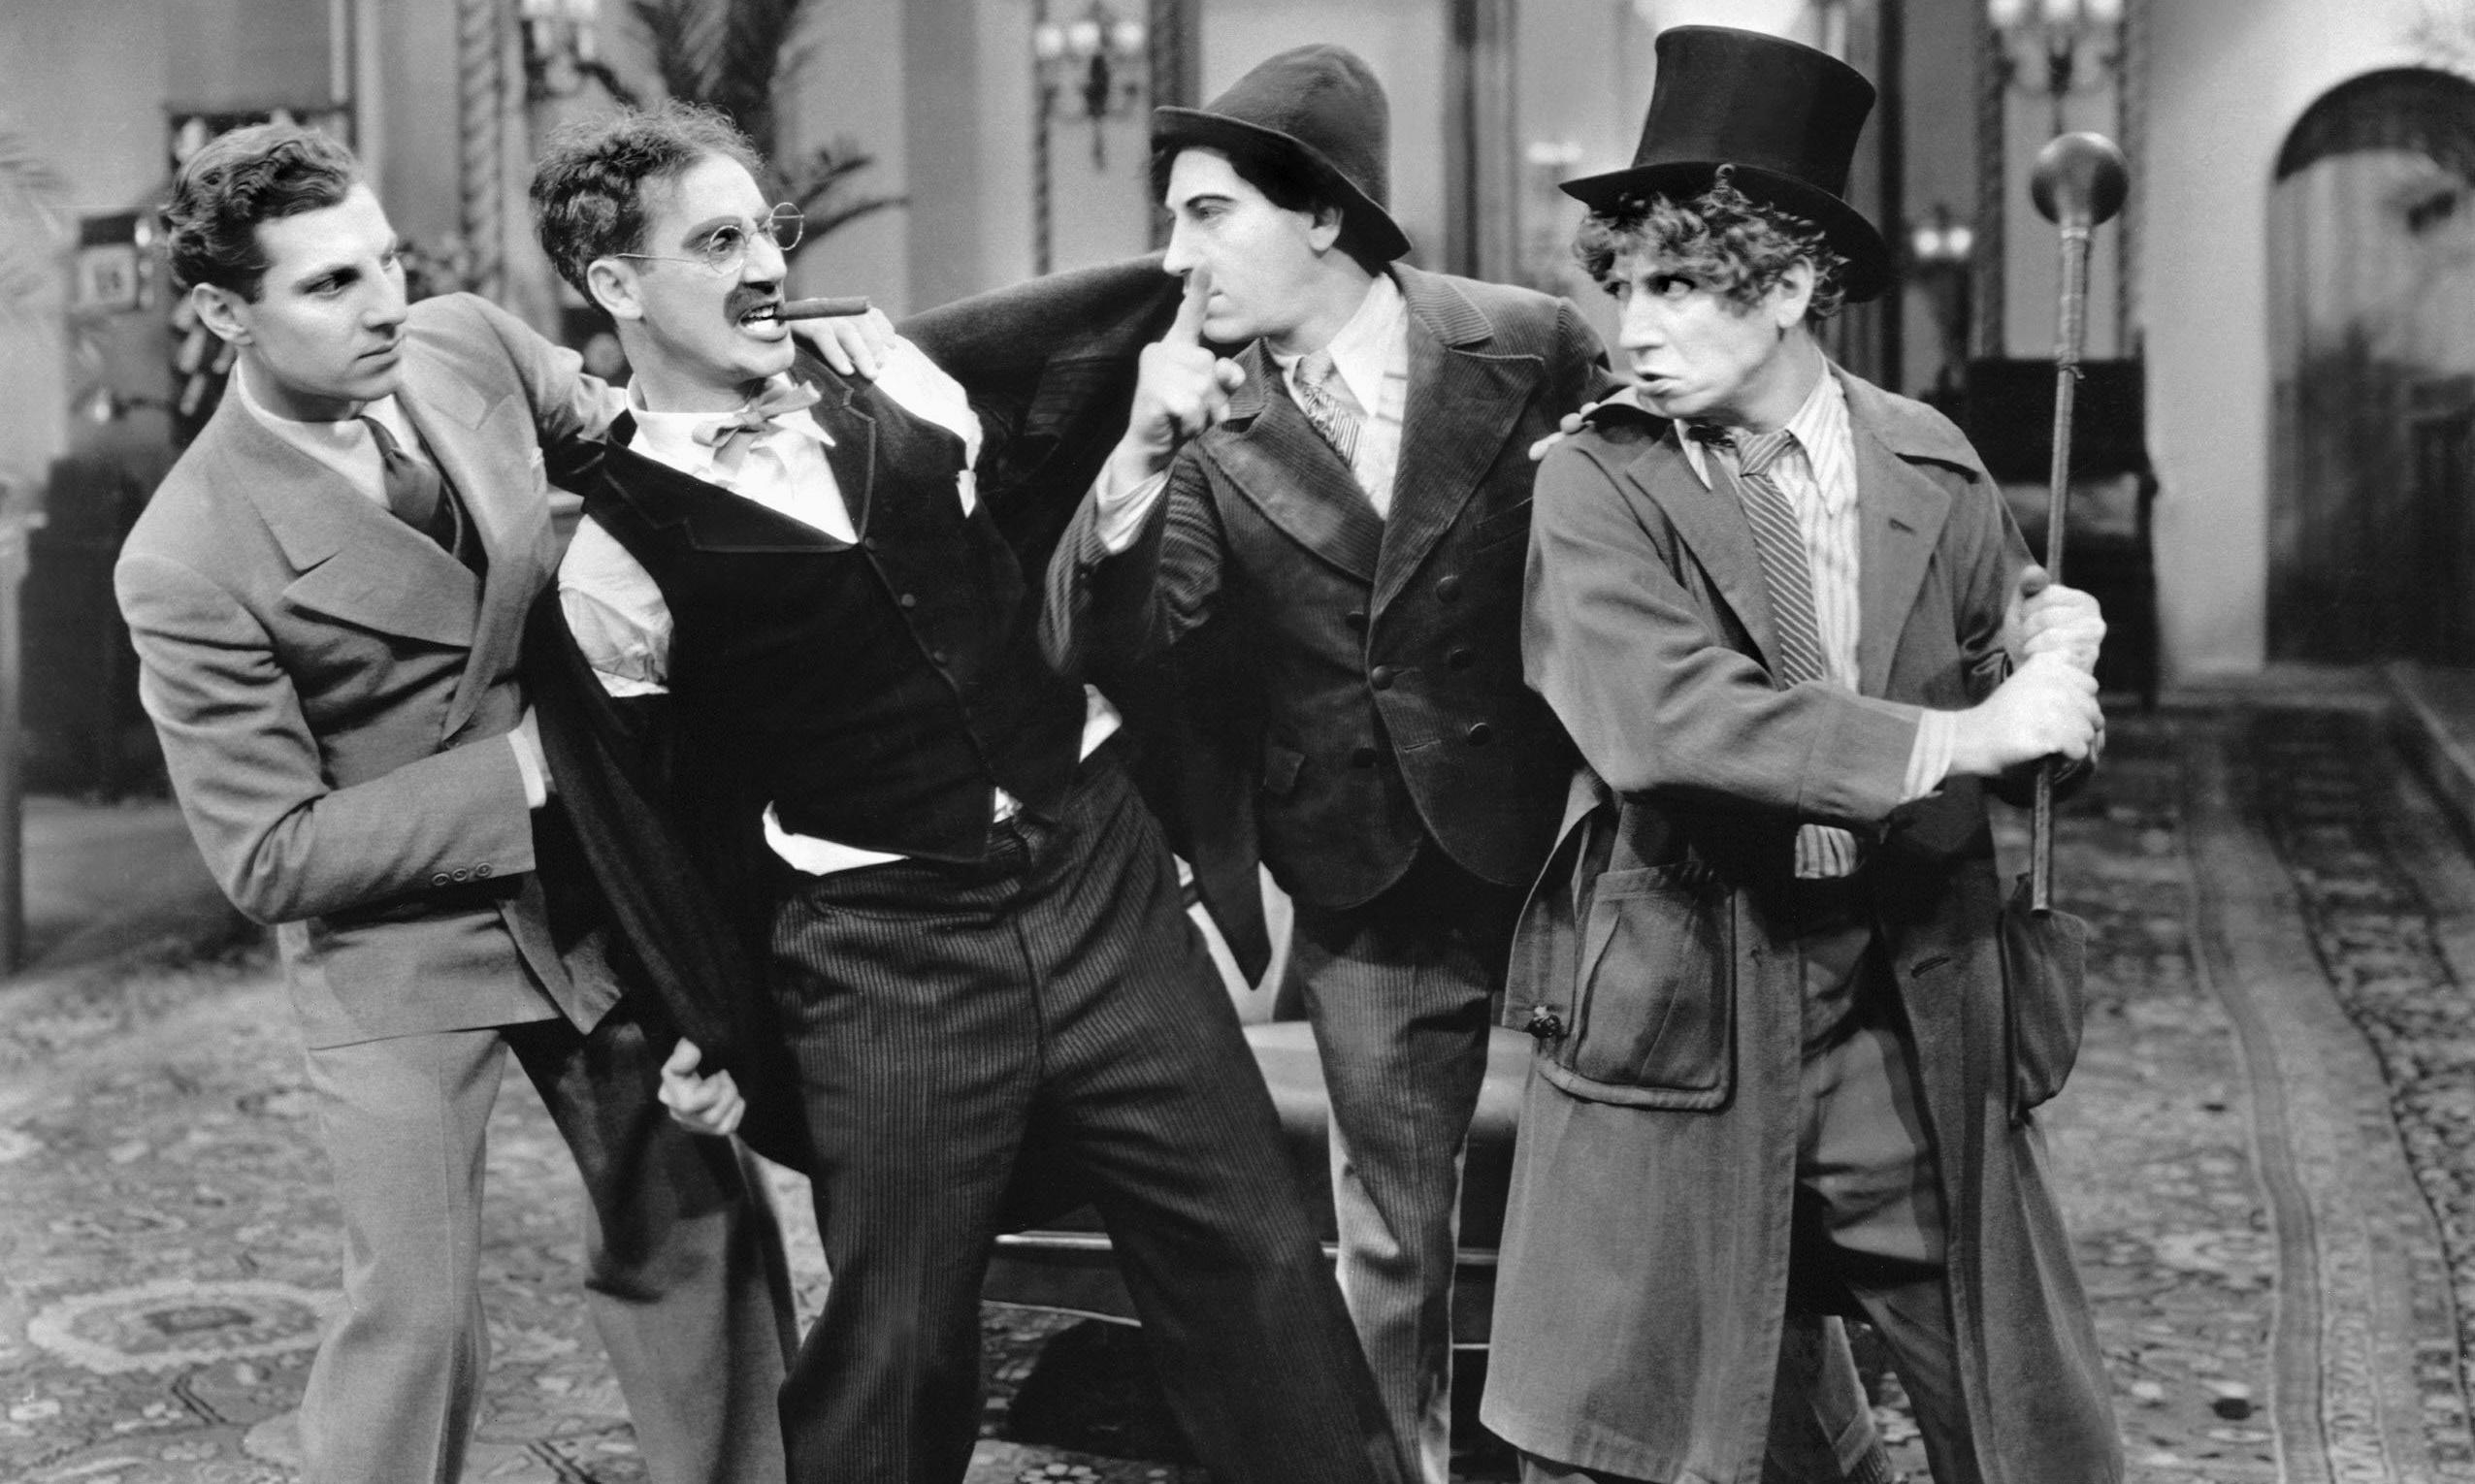 Comically surreal: how Dali's film with Marx brothers came to life